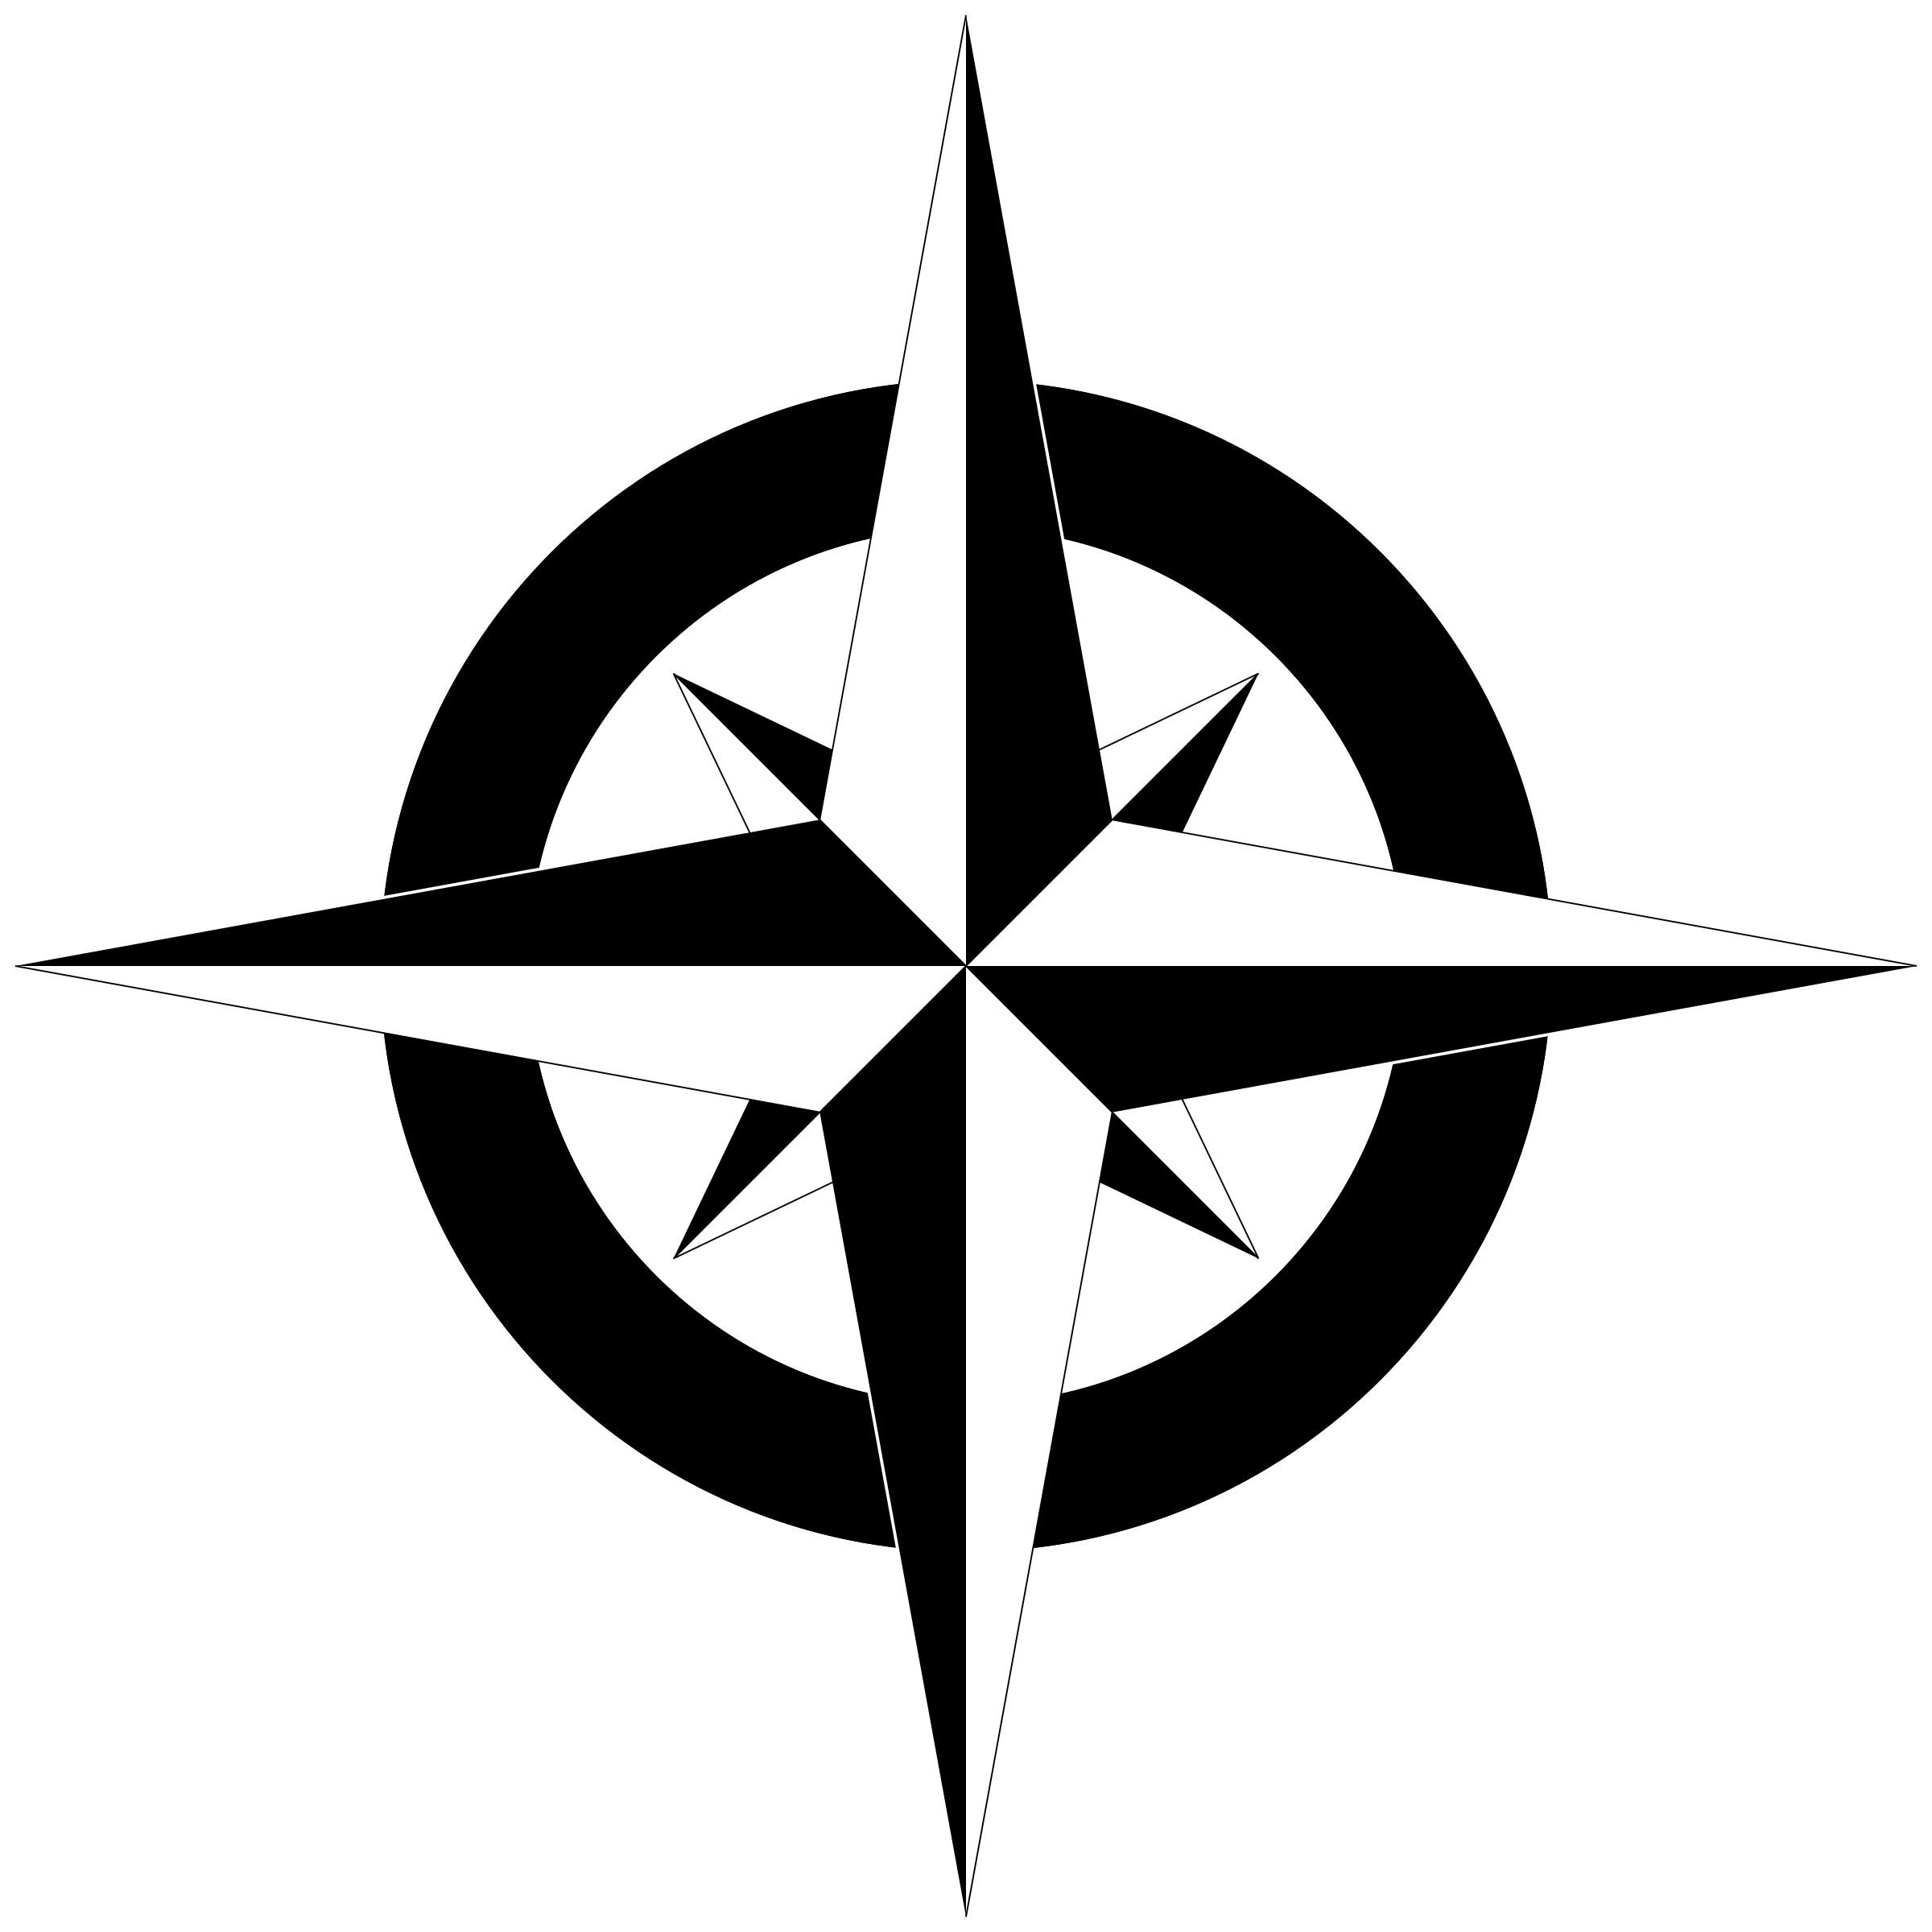 North star clipart black and white picture library download Compass Rose PNG Black And White Transparent Compass Rose Black And ... picture library download